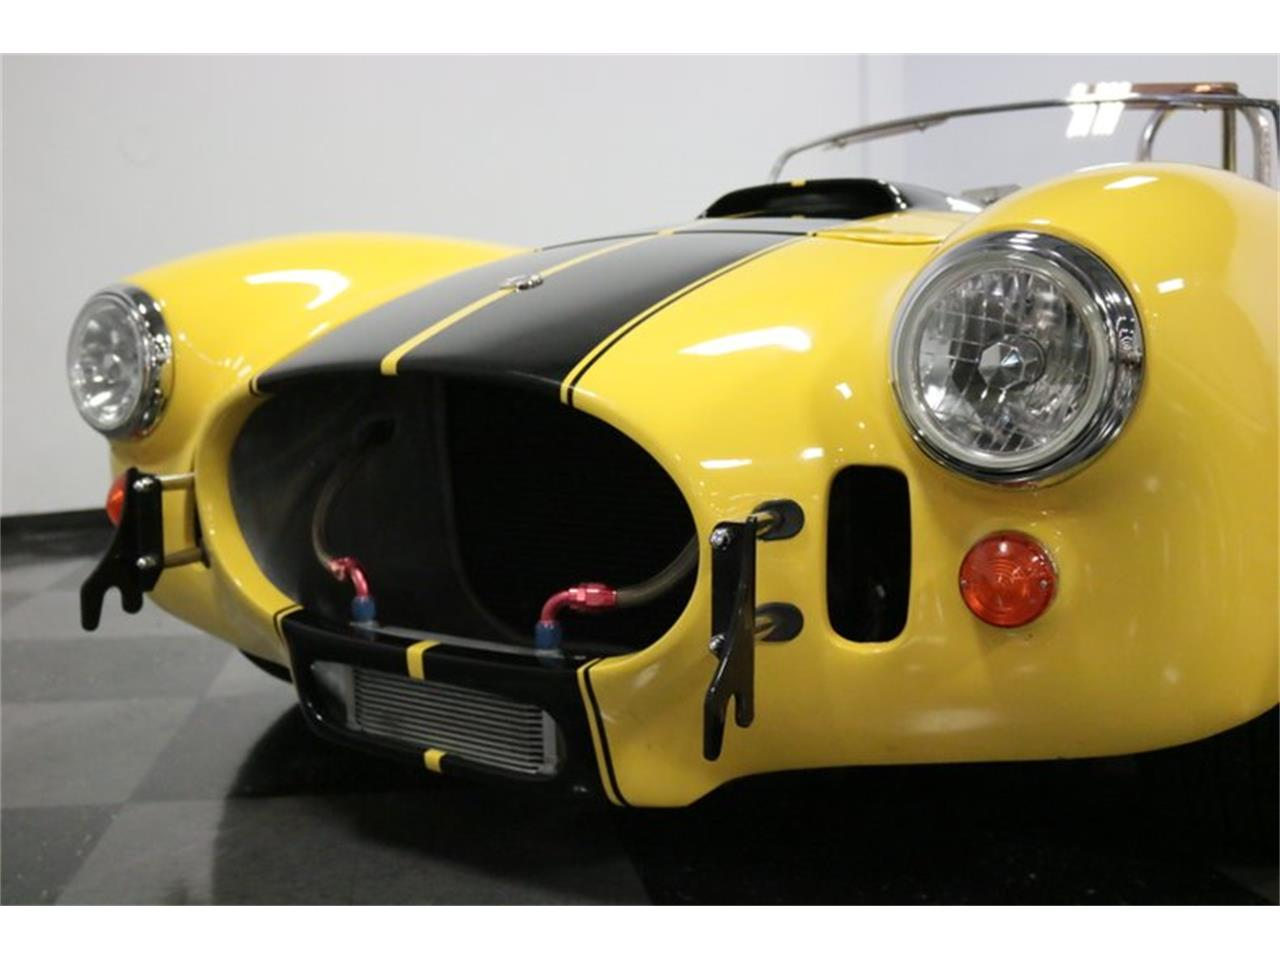 Large Picture of 1966 Shelby Cobra located in Ft Worth Texas - $67,995.00 Offered by Streetside Classics - Dallas / Fort Worth - QJSF